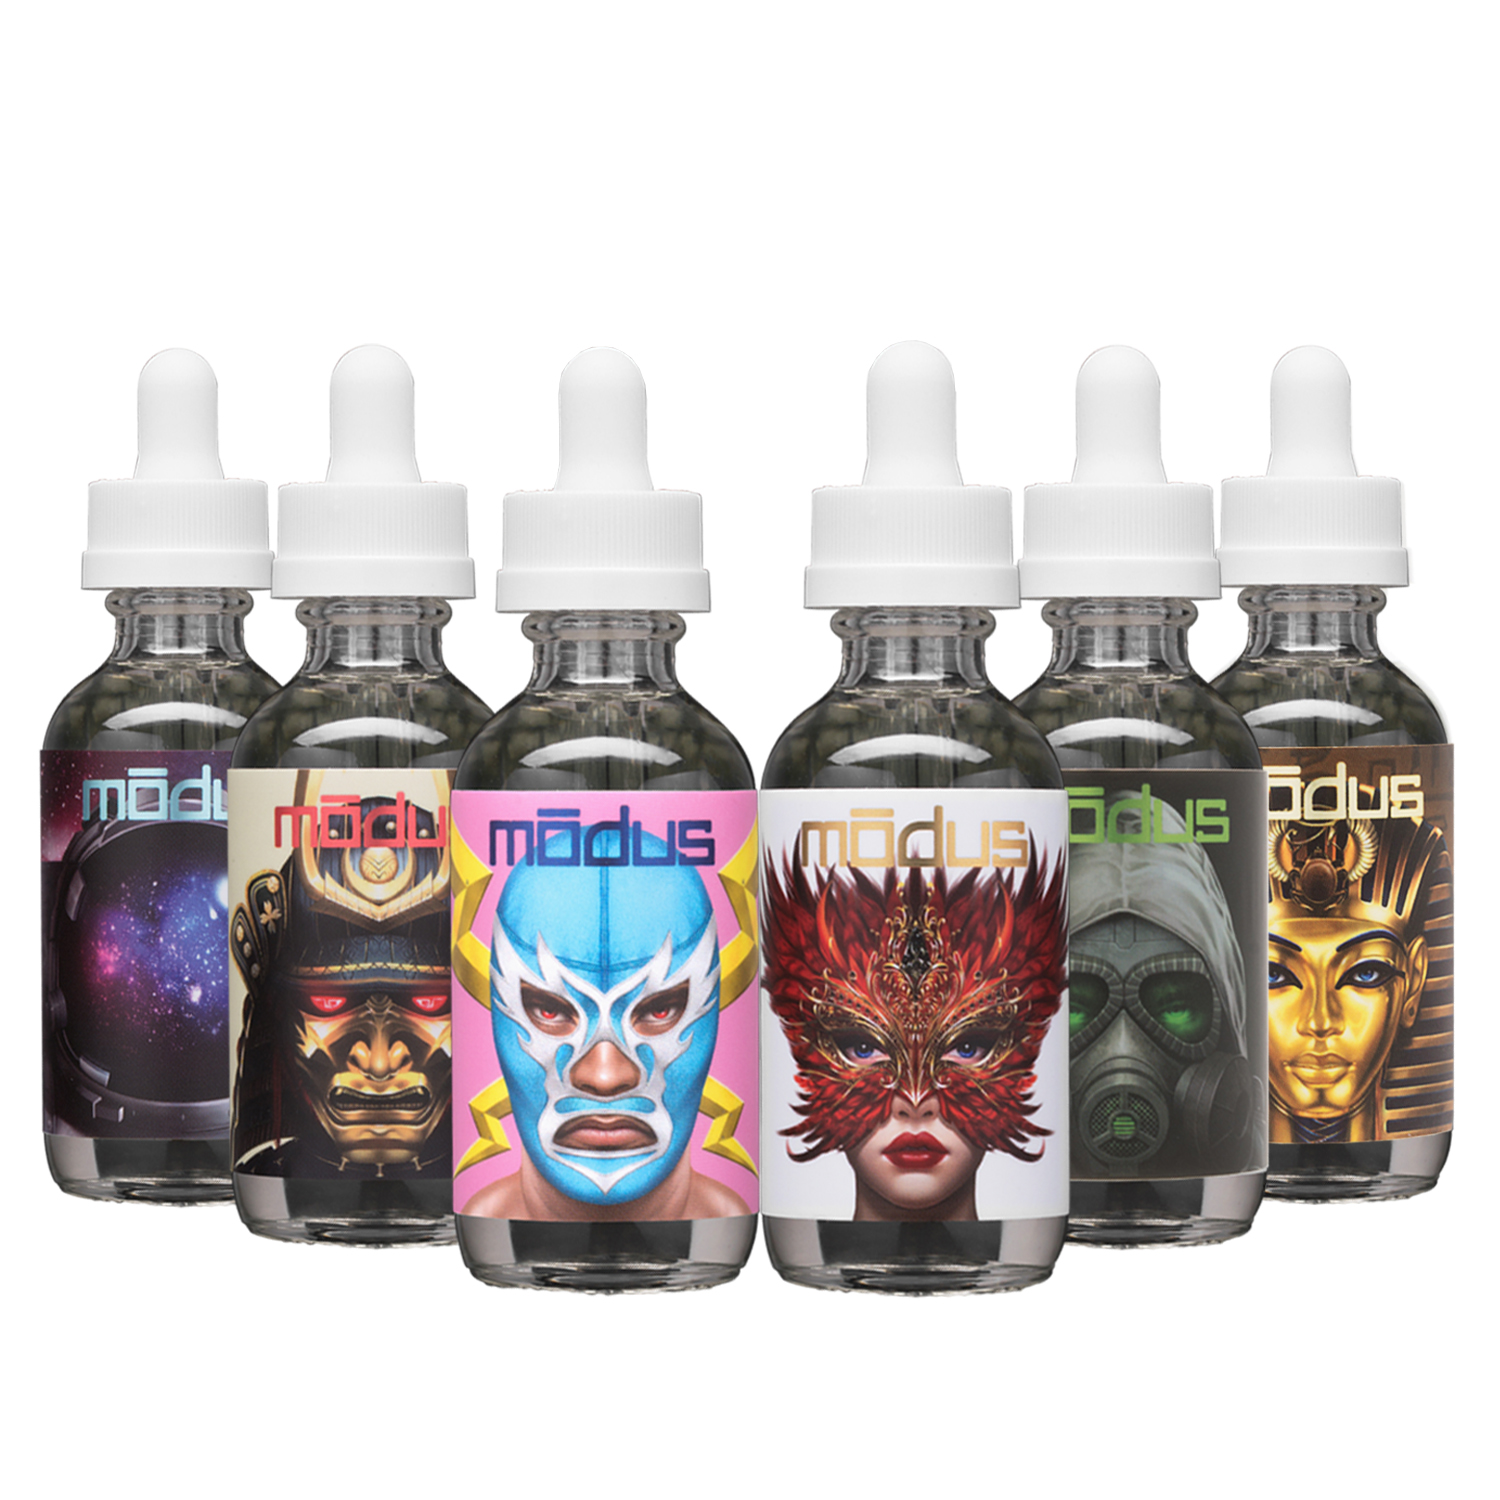 Modus Vapors 6-Bottle Signature Value Pack | 1x Molly + 1x Pablo + 1x Akuma + 1x Buzz + 1x Riot + 1x Ka | 360mL Photo